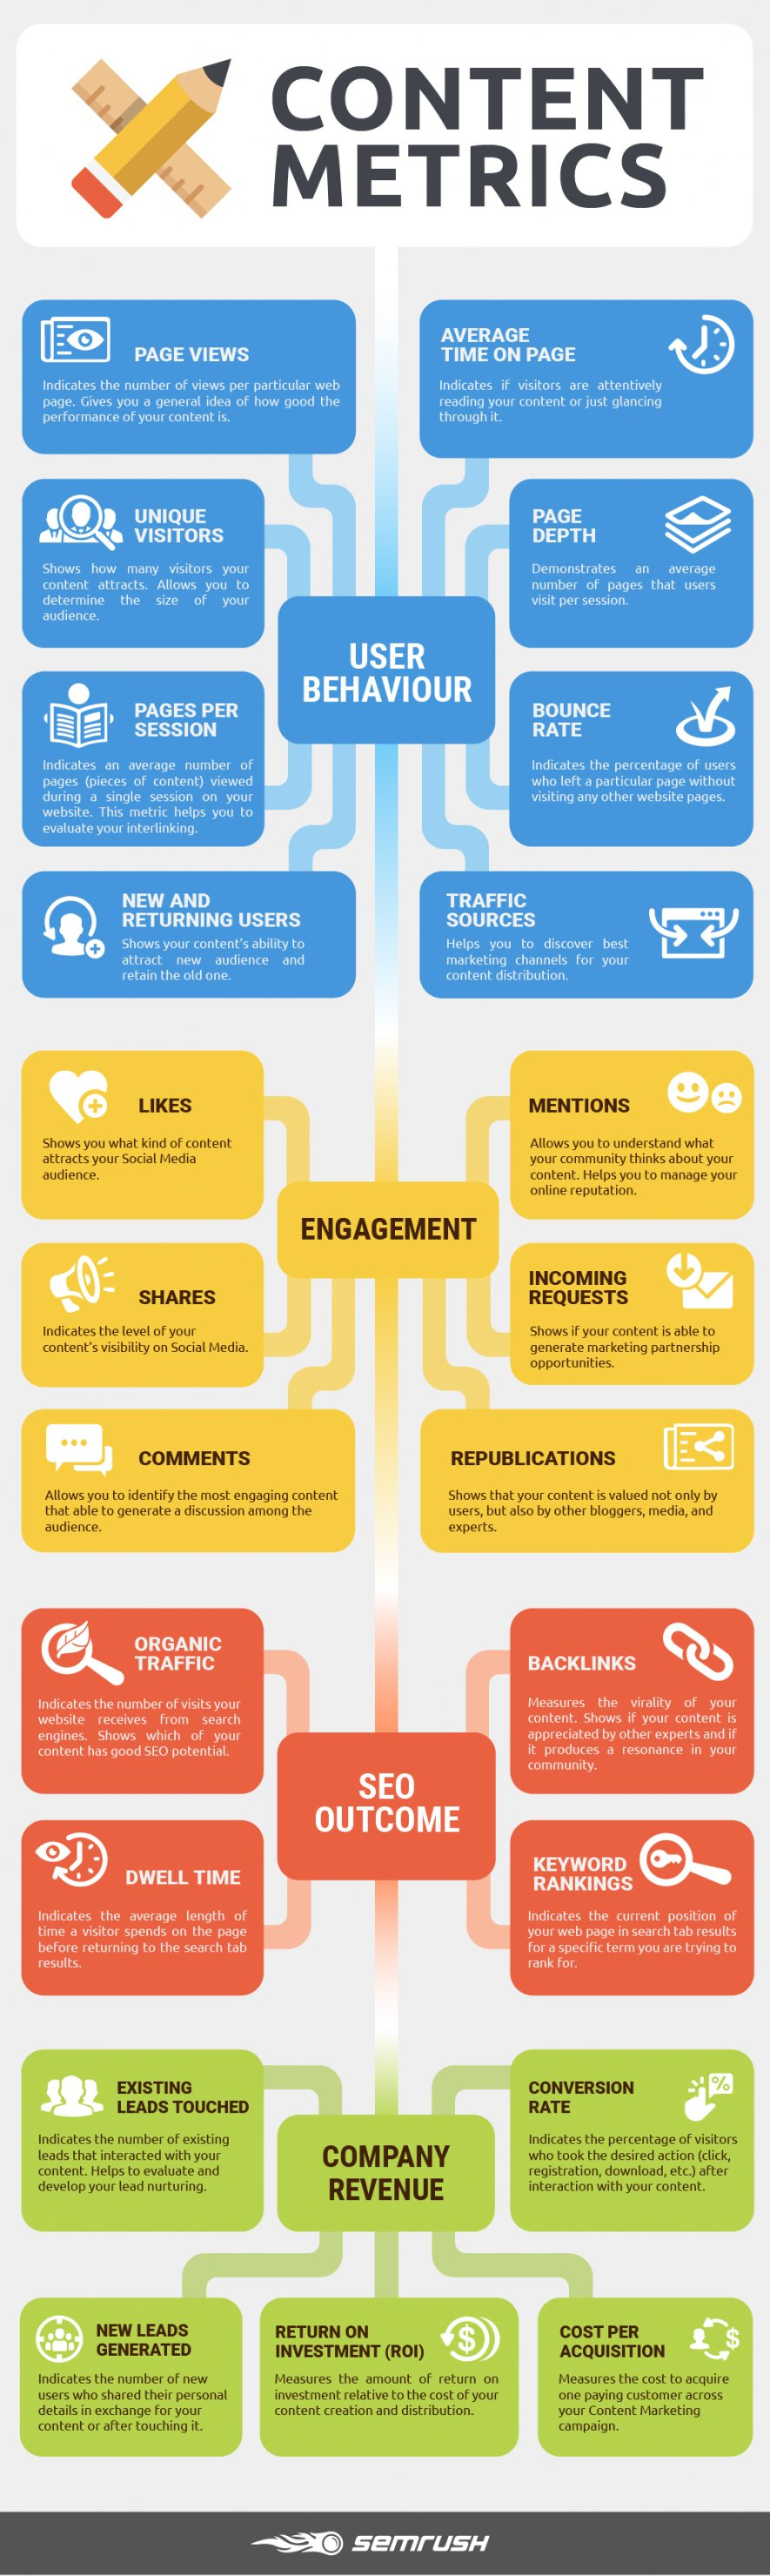 23 Metrics to Measure Content Marketing Success [Infographic]